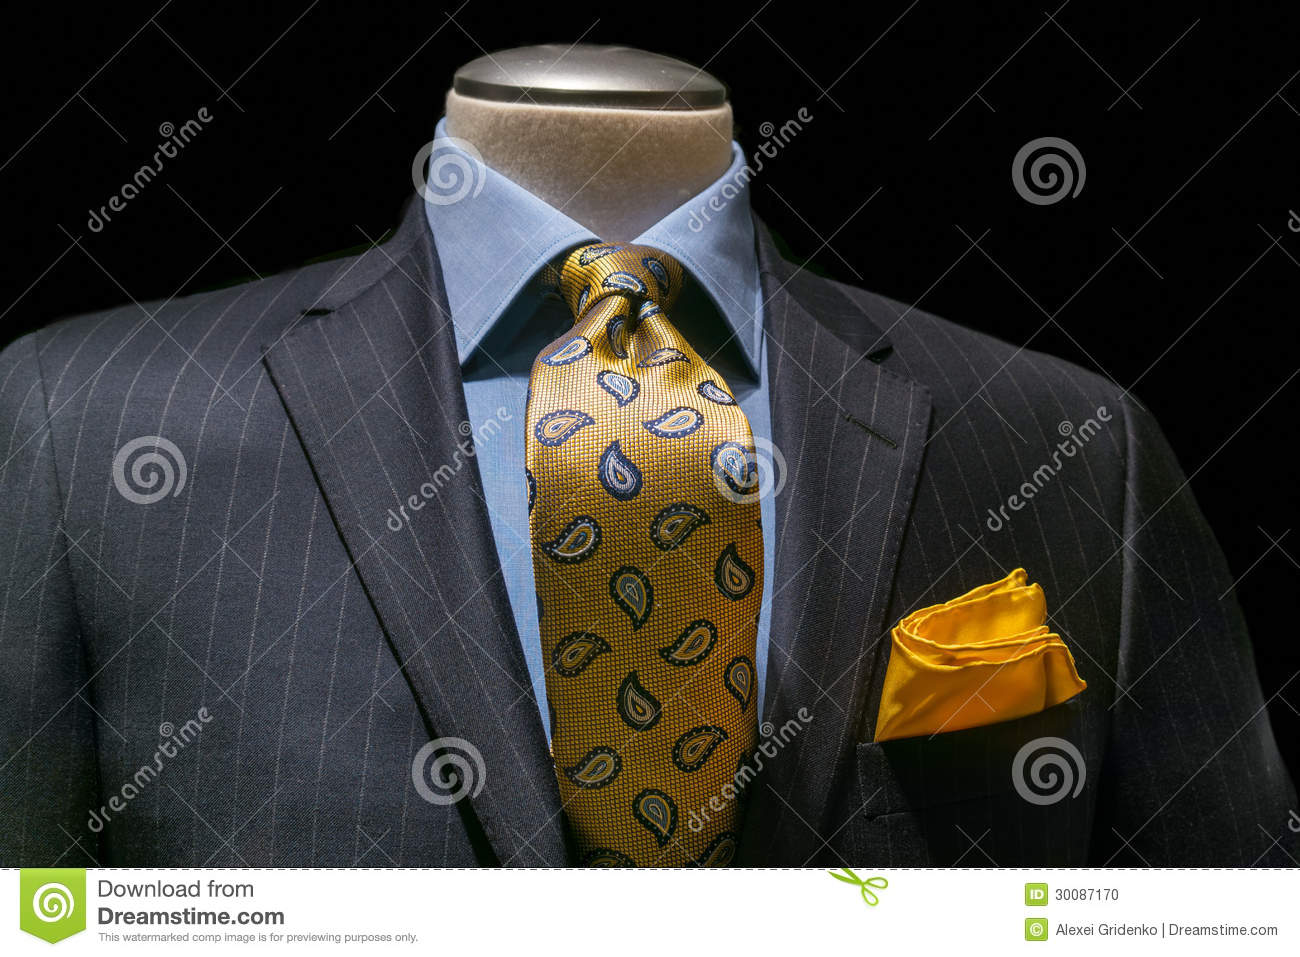 Cartoon Characters Yellow And Black Striped Shirts : Striped jacket with blue shirt tie handkerchief stock